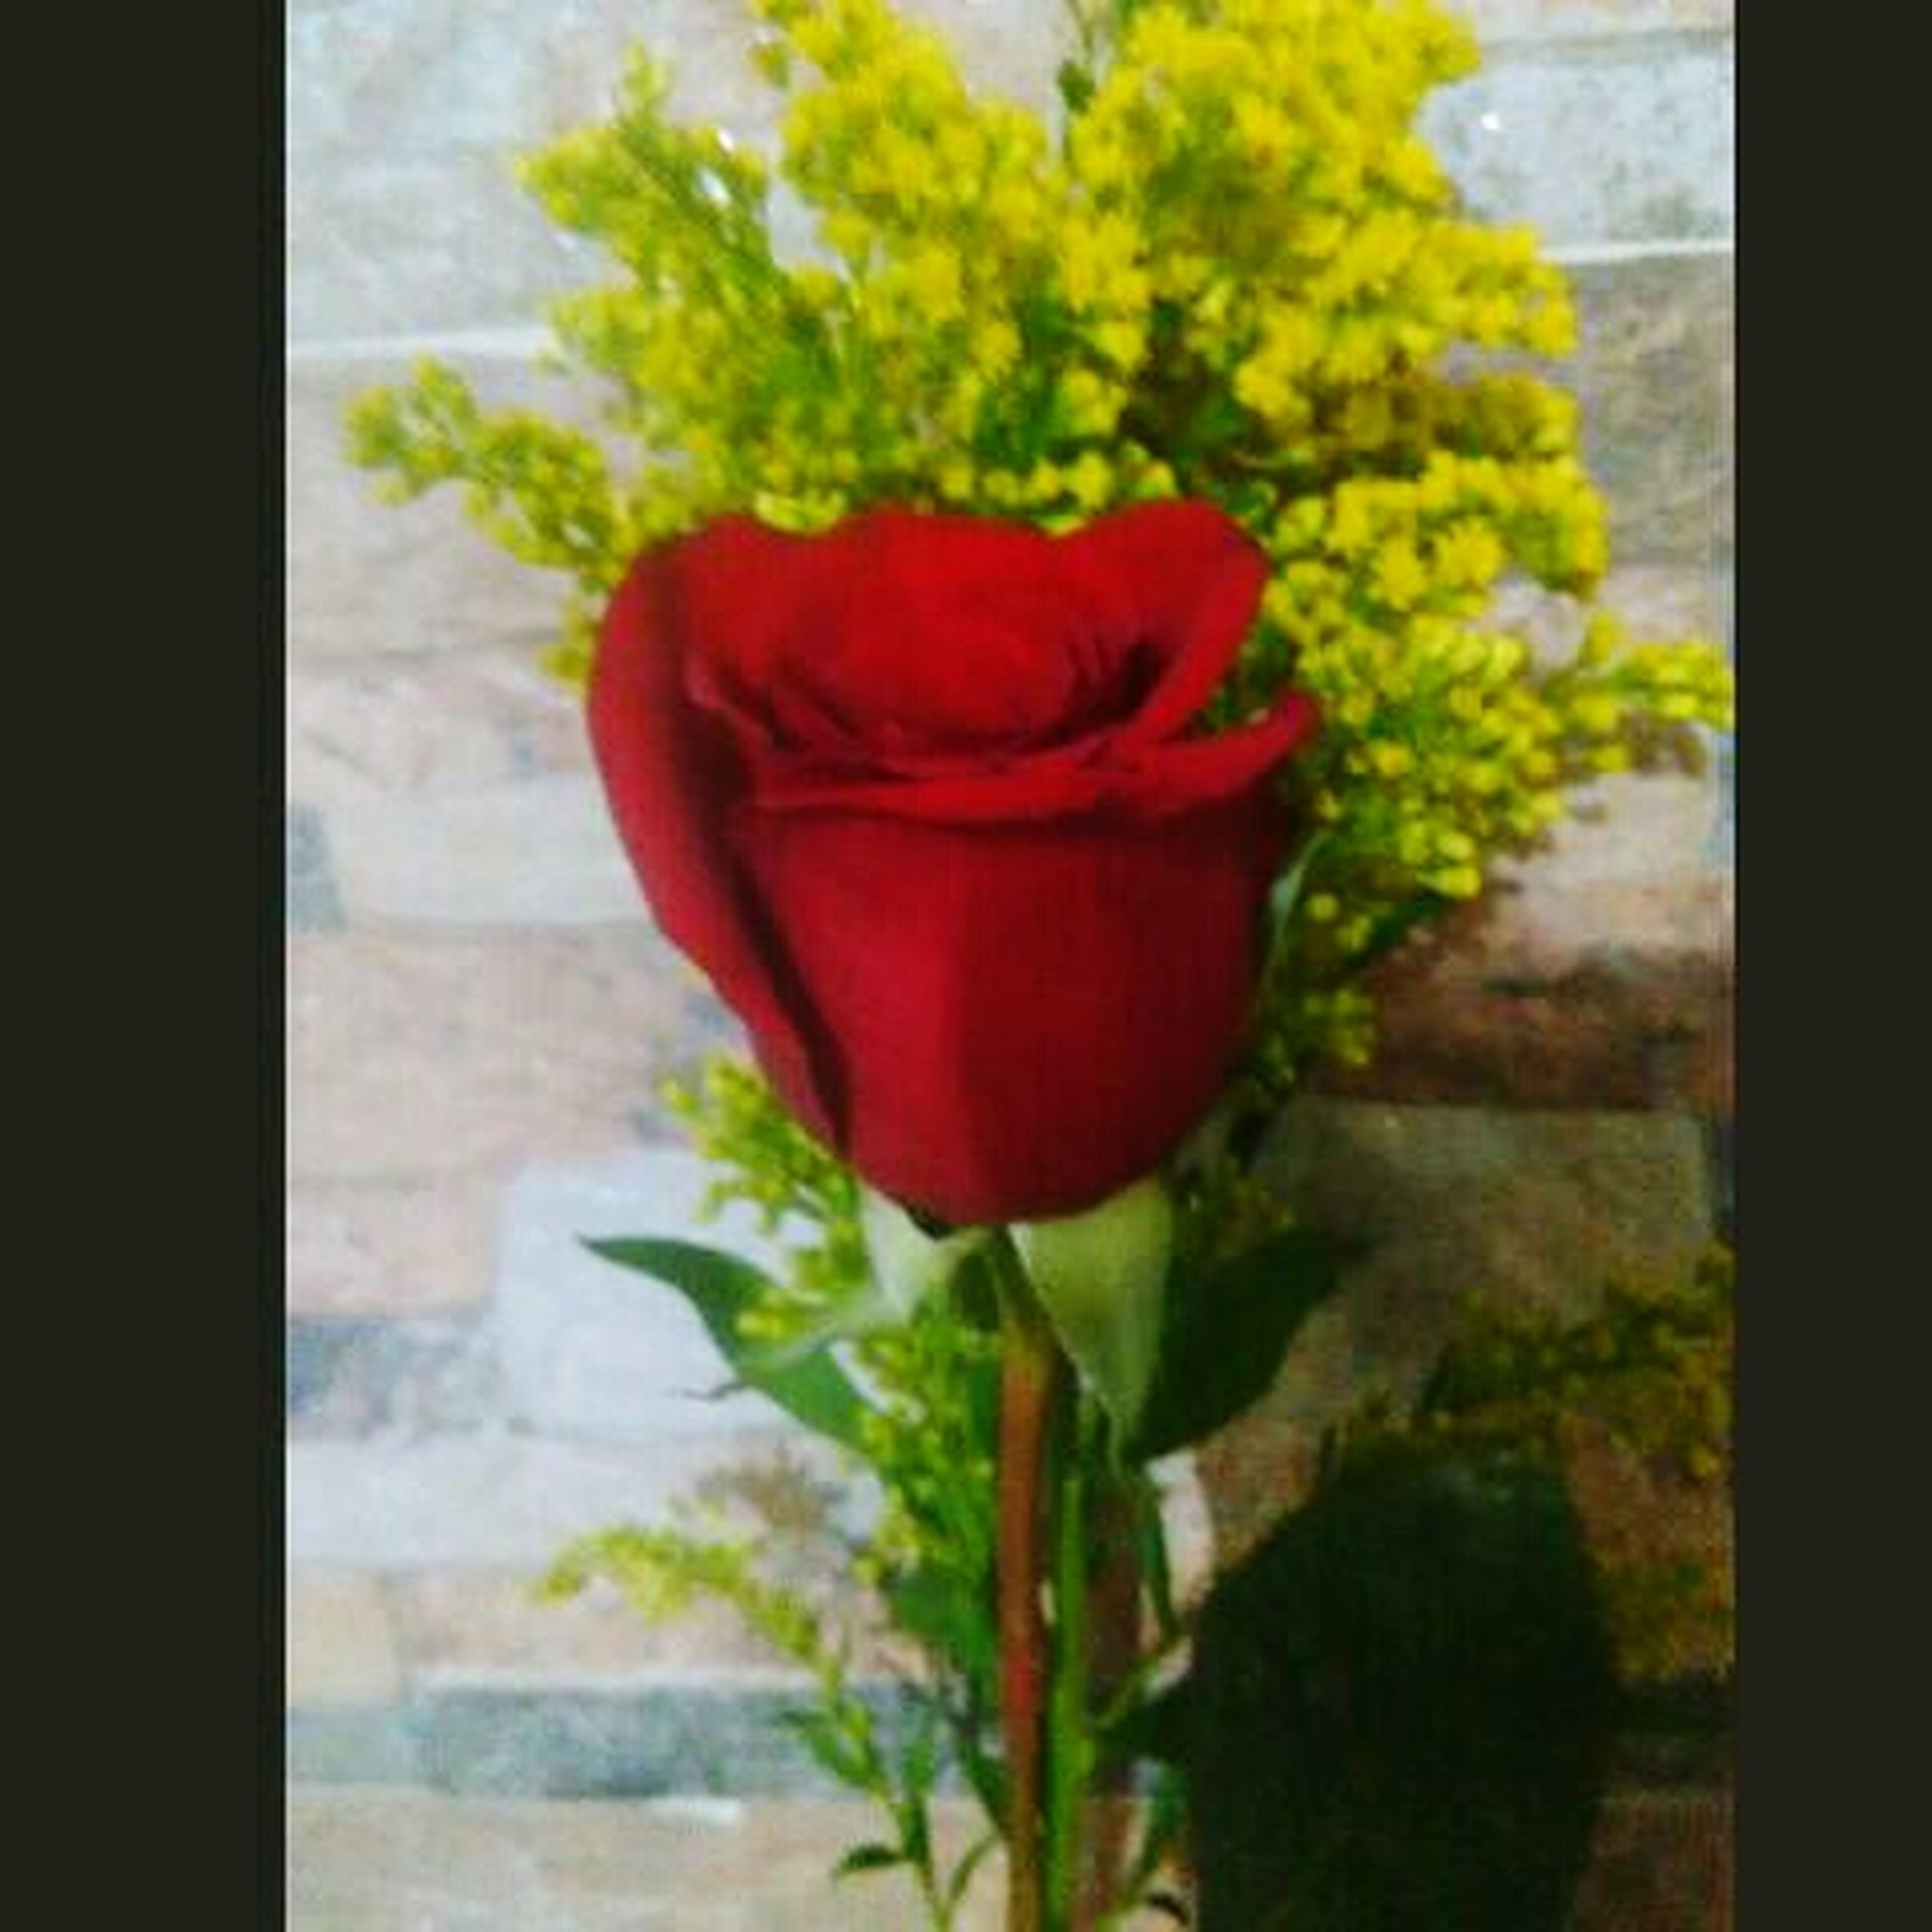 flower, red, beauty in nature, nature, freshness, no people, fragility, growth, plant, petal, close-up, day, tulip, flower head, outdoors